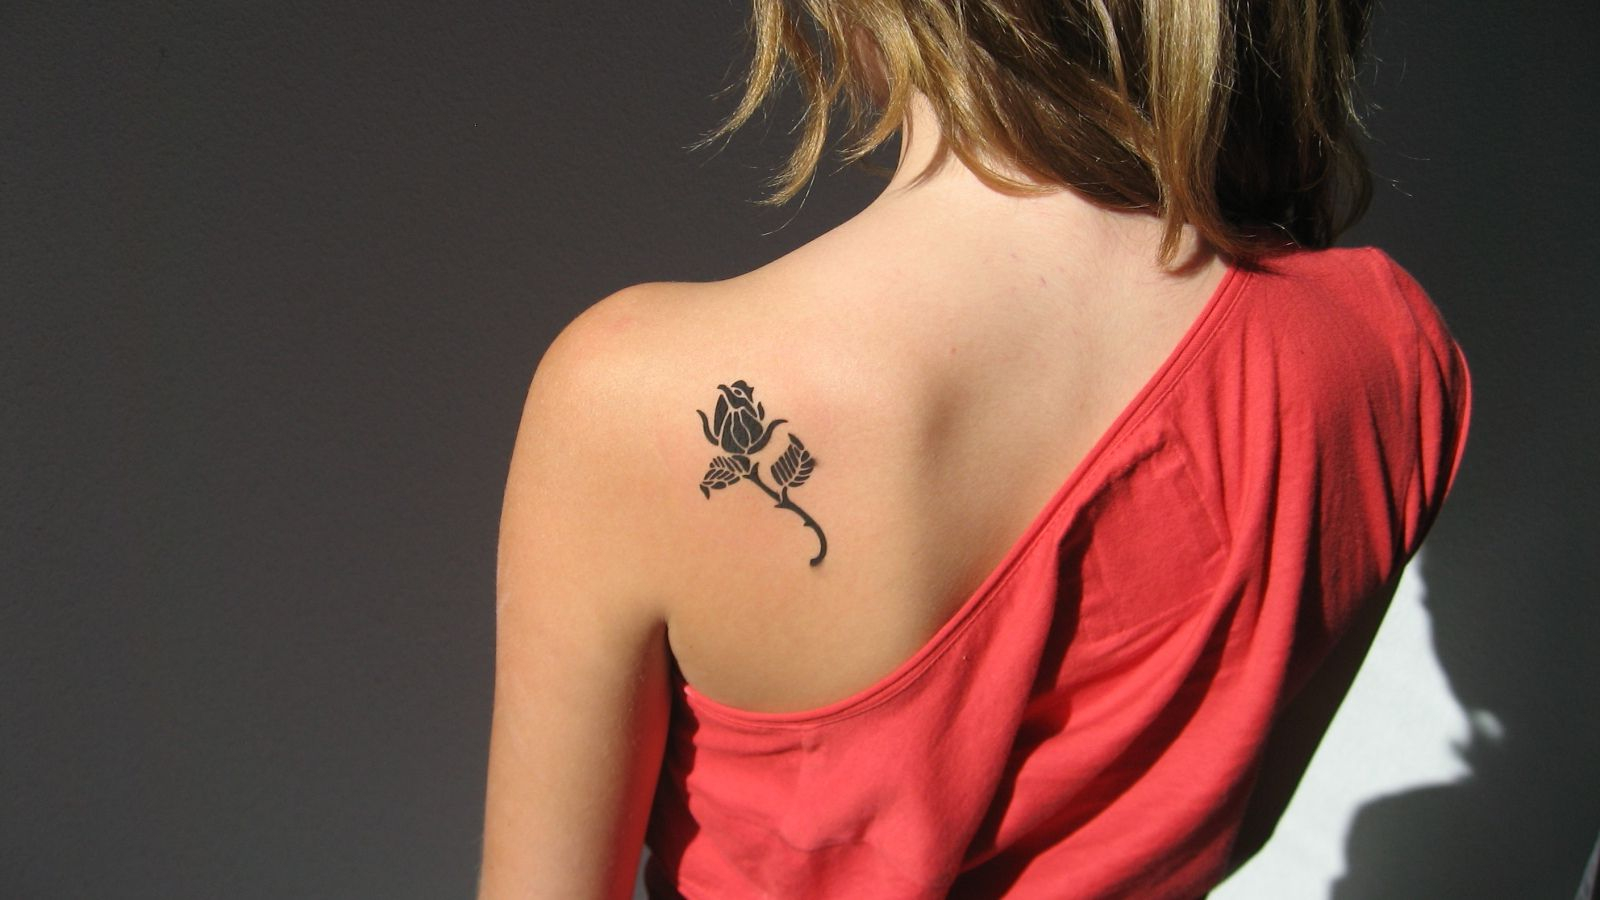 Girl Tattoos On Shoulder Blade 30 Small Cute Tattoos For Girls in size 1600 X 900